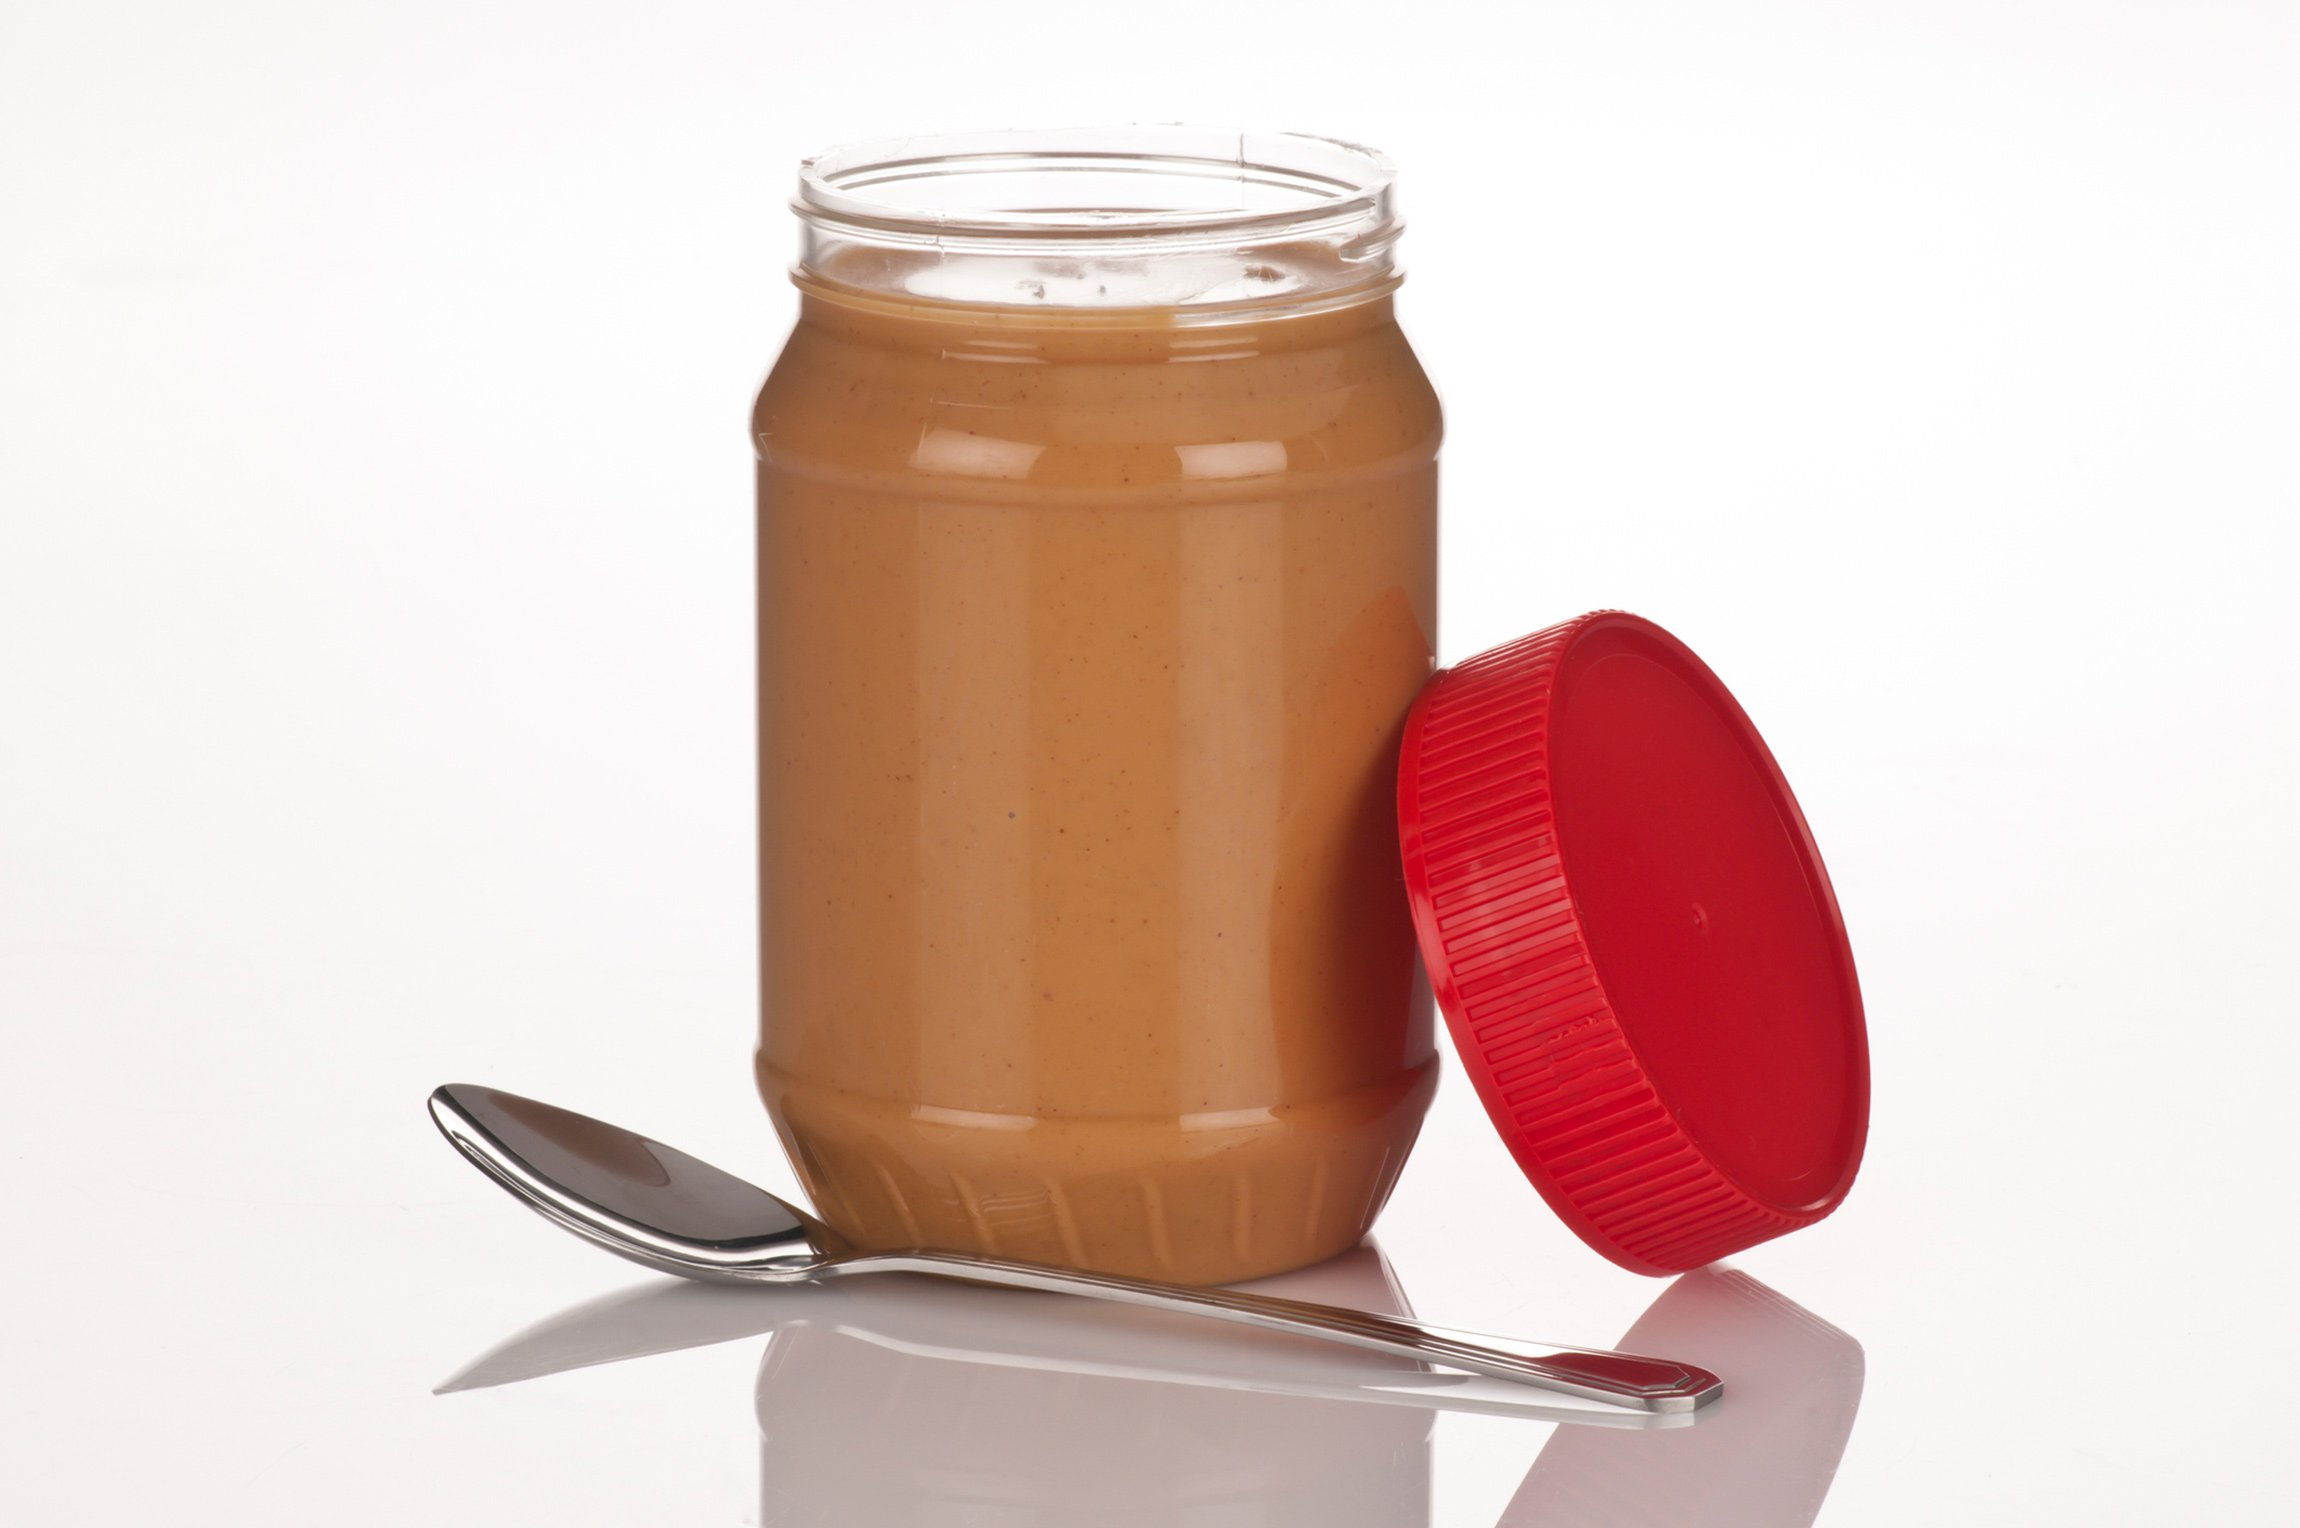 A jar of peanut butter with a spoon and the lid off